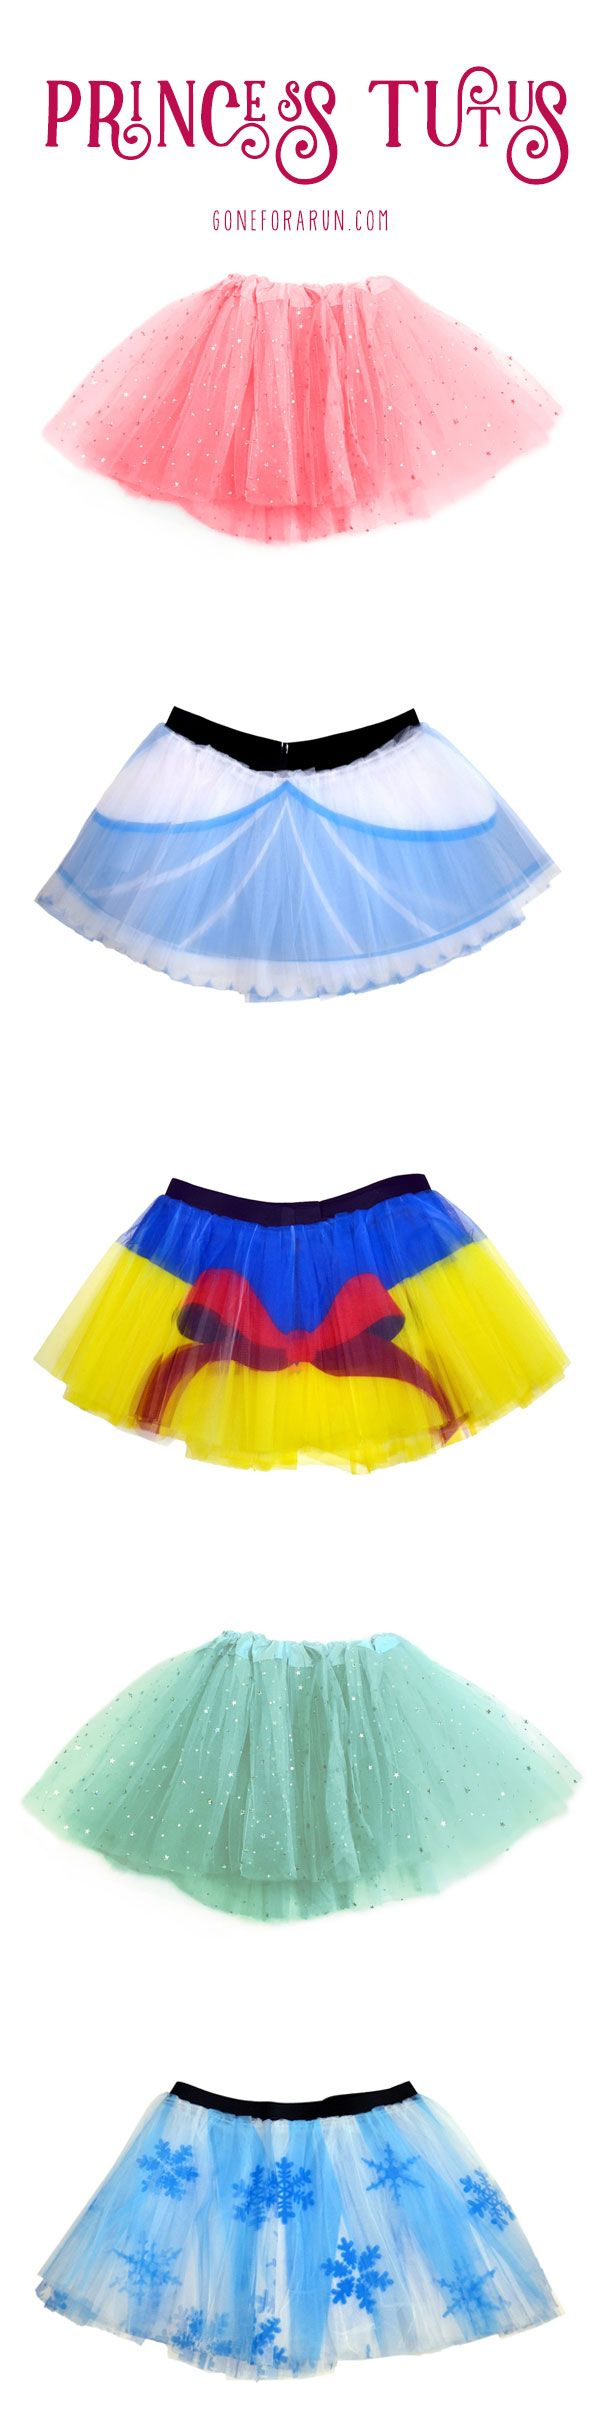 If you plan on running like a #princess, you must also dress like a princess! Check out our assortment of princess tutus which are perfect for any magical run you plan on participating in!